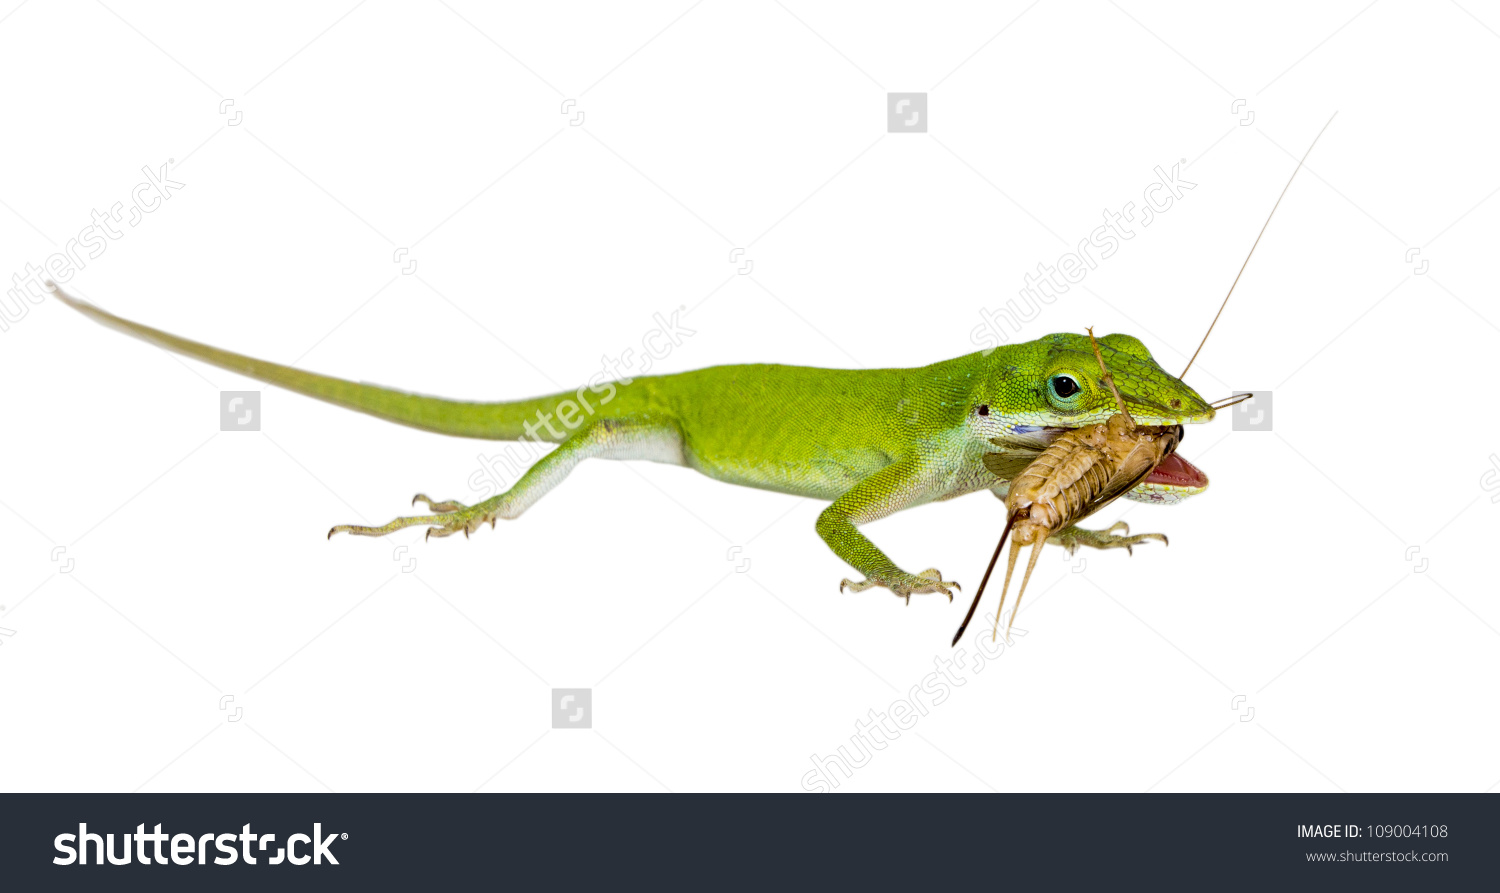 Green Anole clipart #2, Download drawings